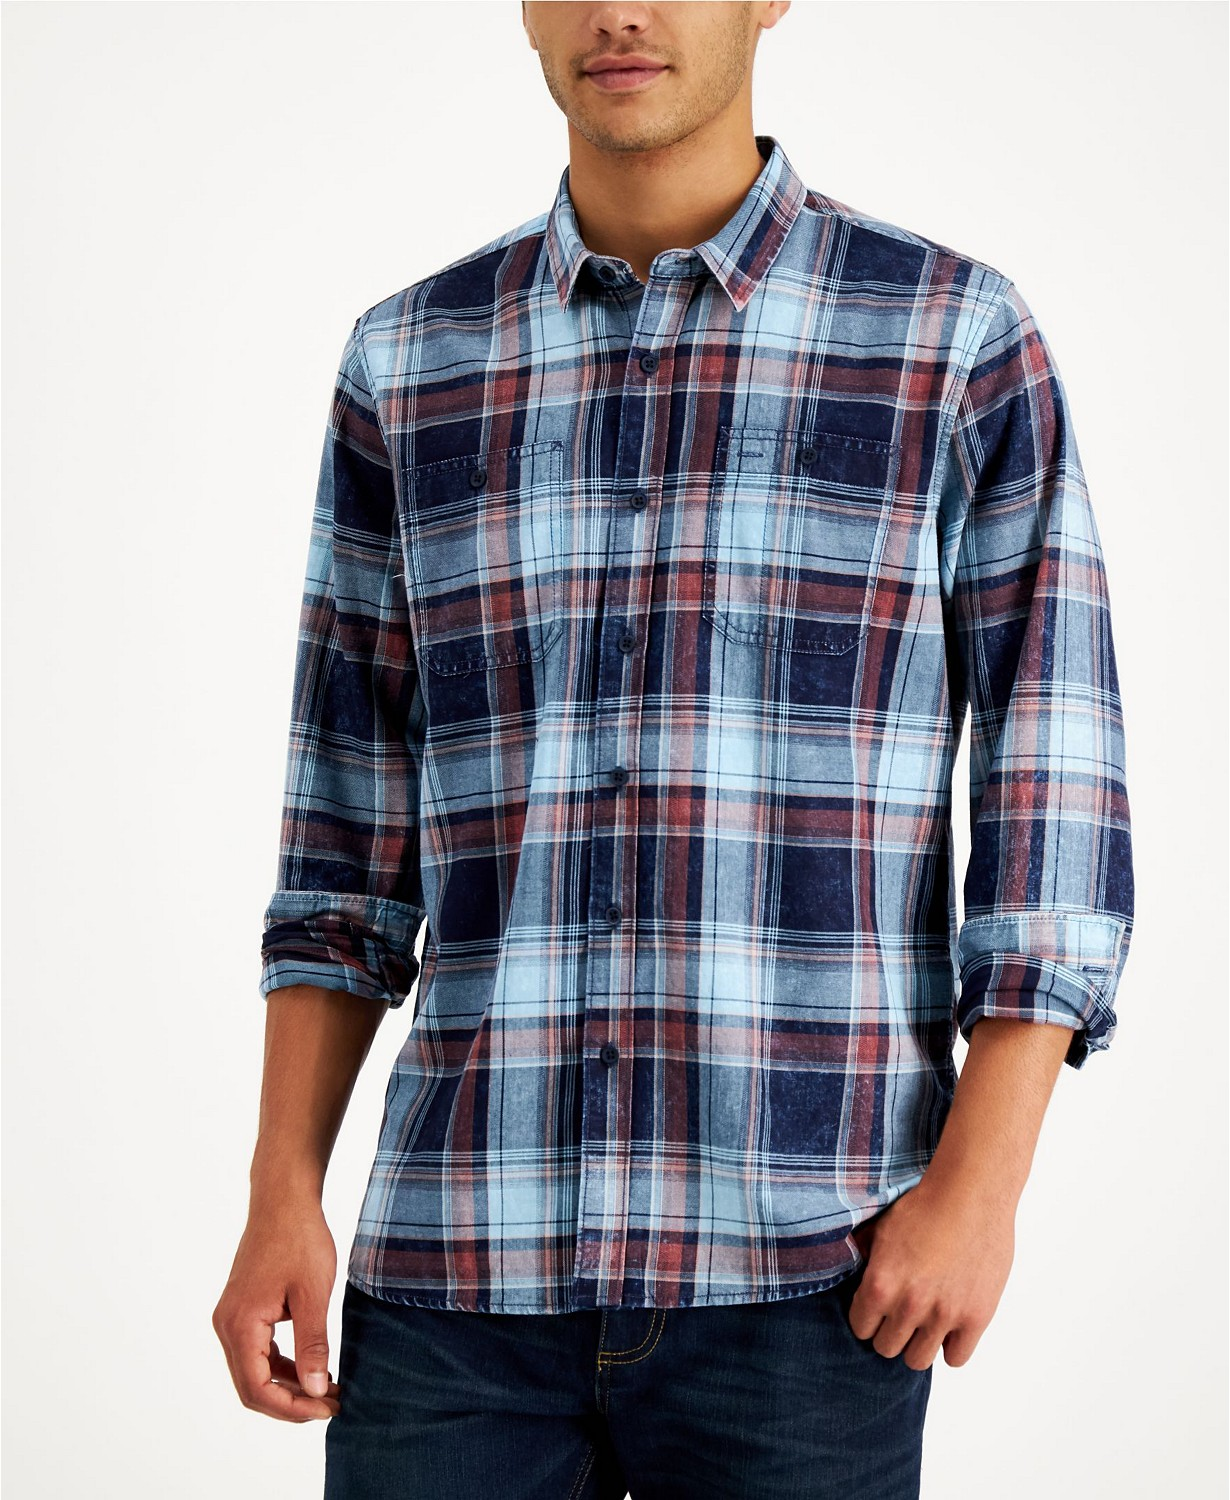 Sun + Stone Men's Abe Plaid Shirt, Created for Macy's